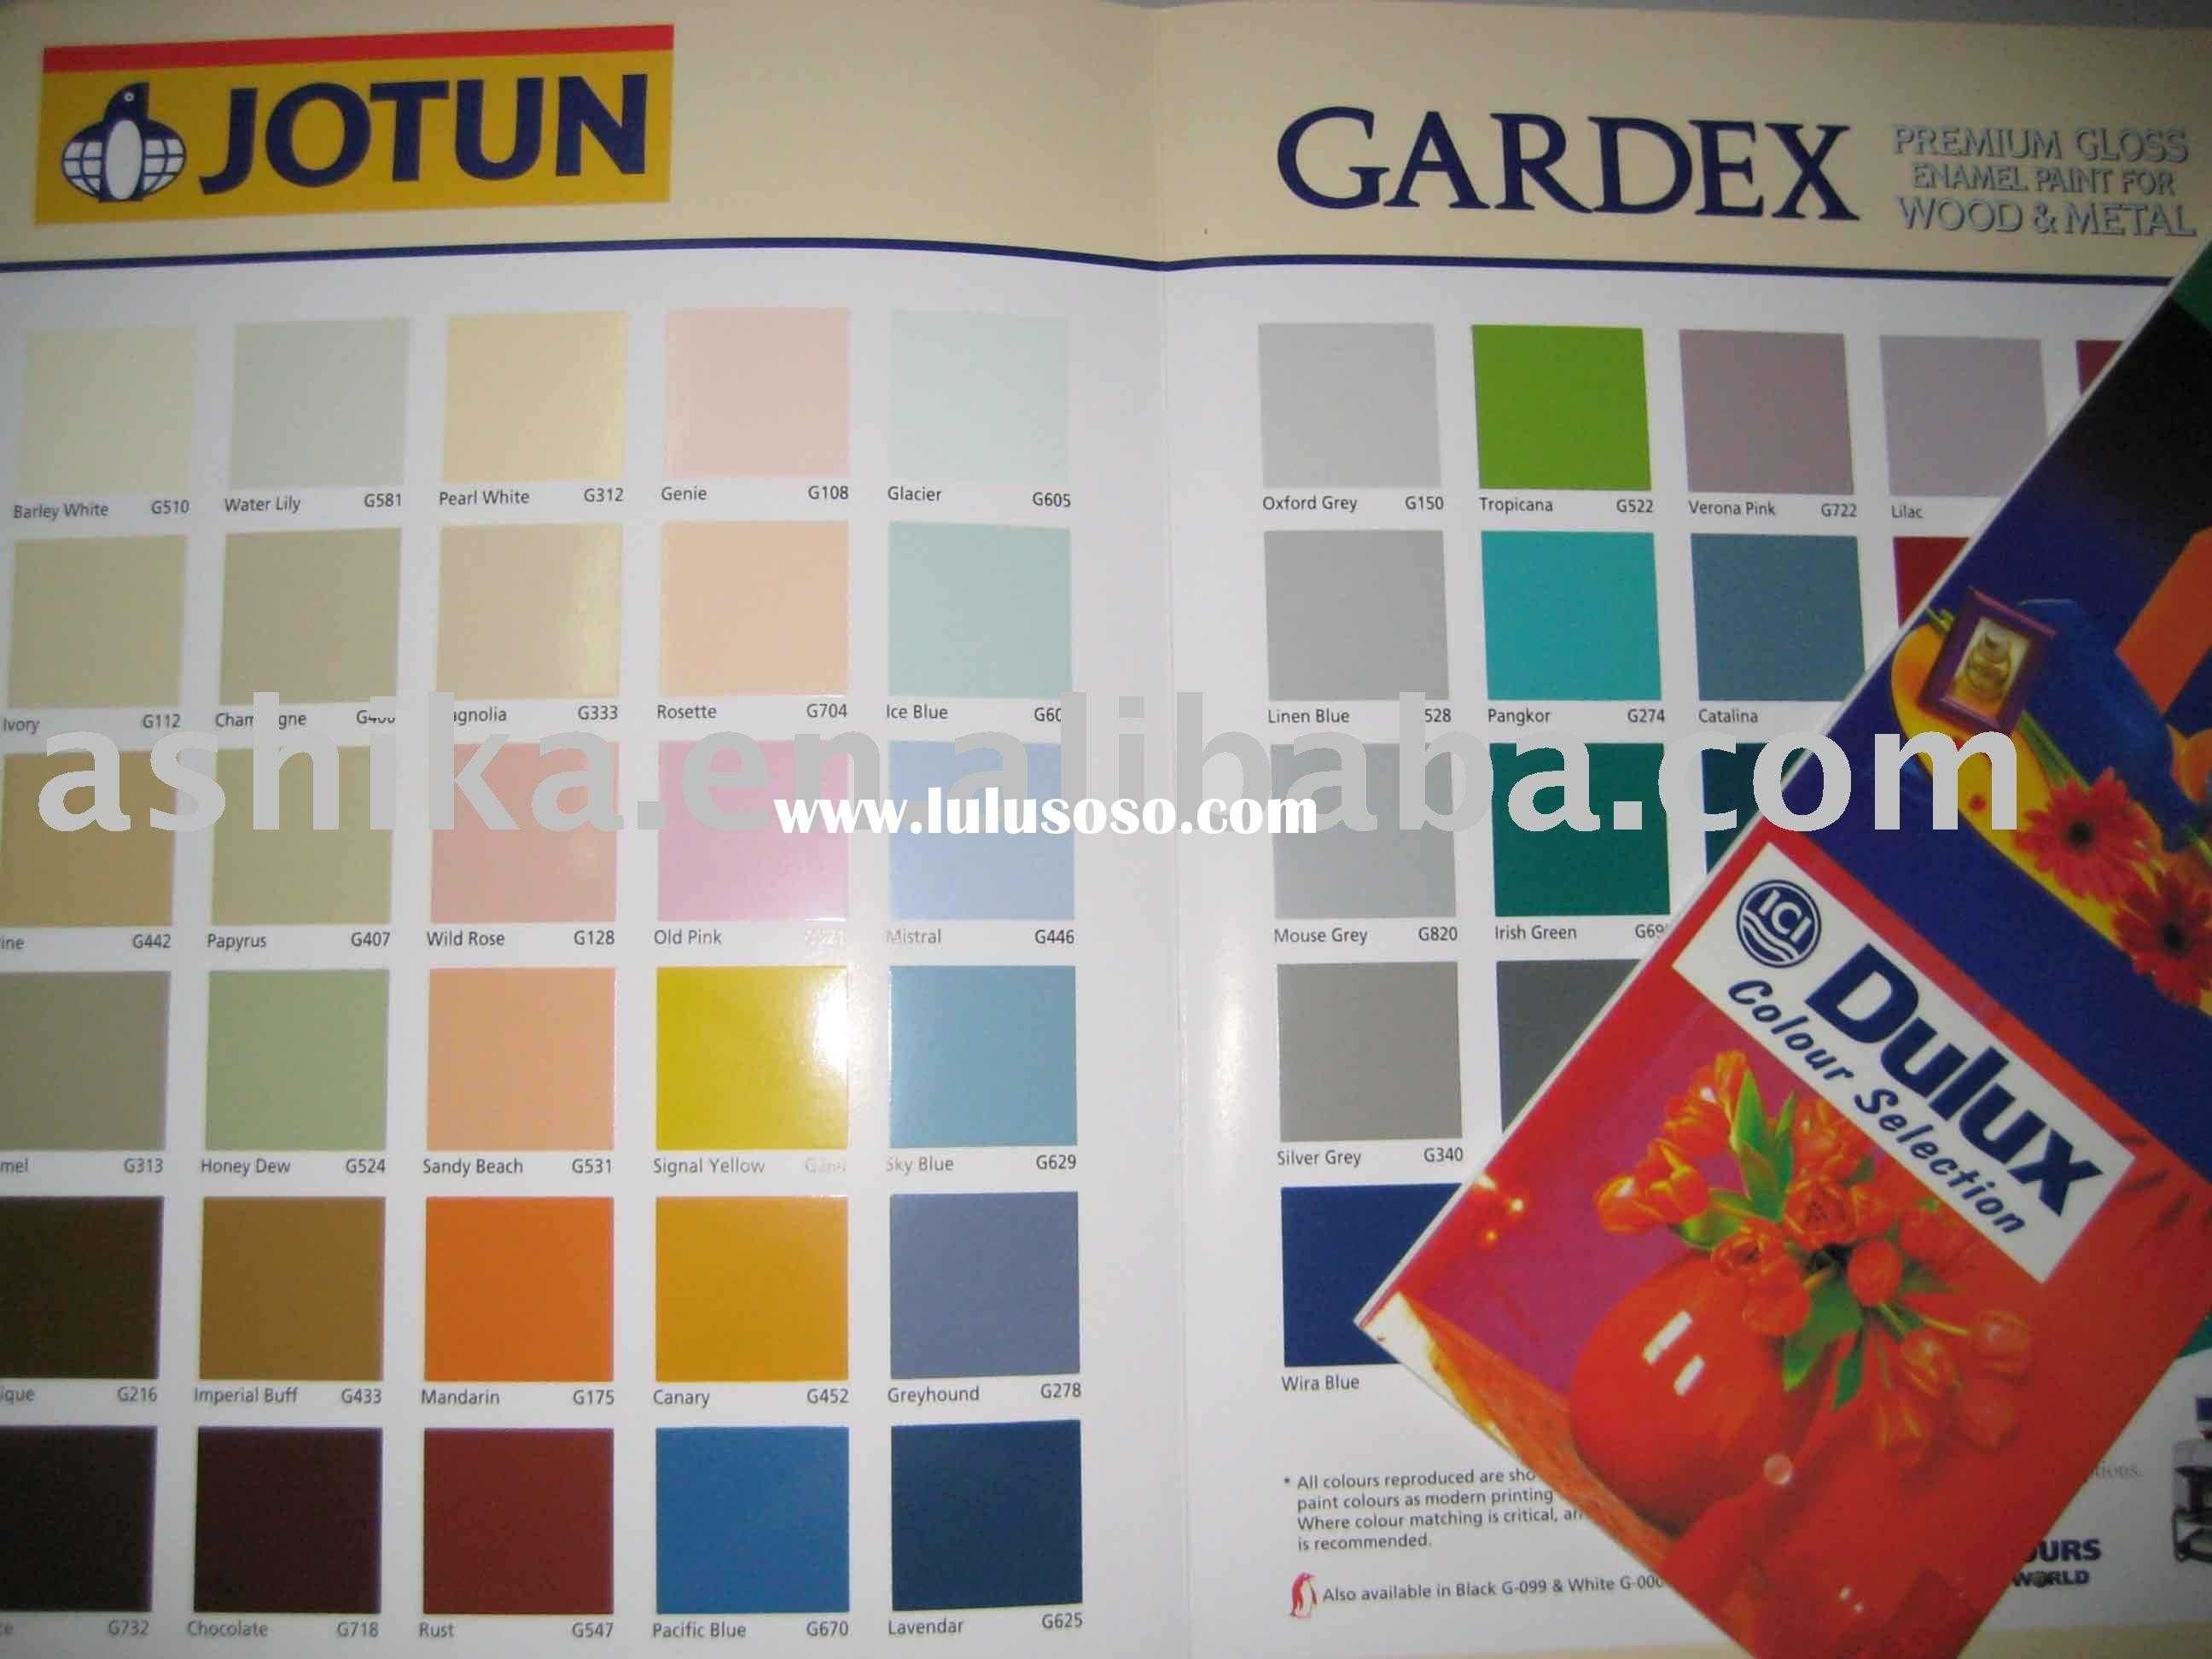 Home Decor Asian Paints Shade Card Asian Paints Royale Colour Trends Including Charming Shade Card Pictures Shades Asian Paints Asian Paints Royale Shade Card